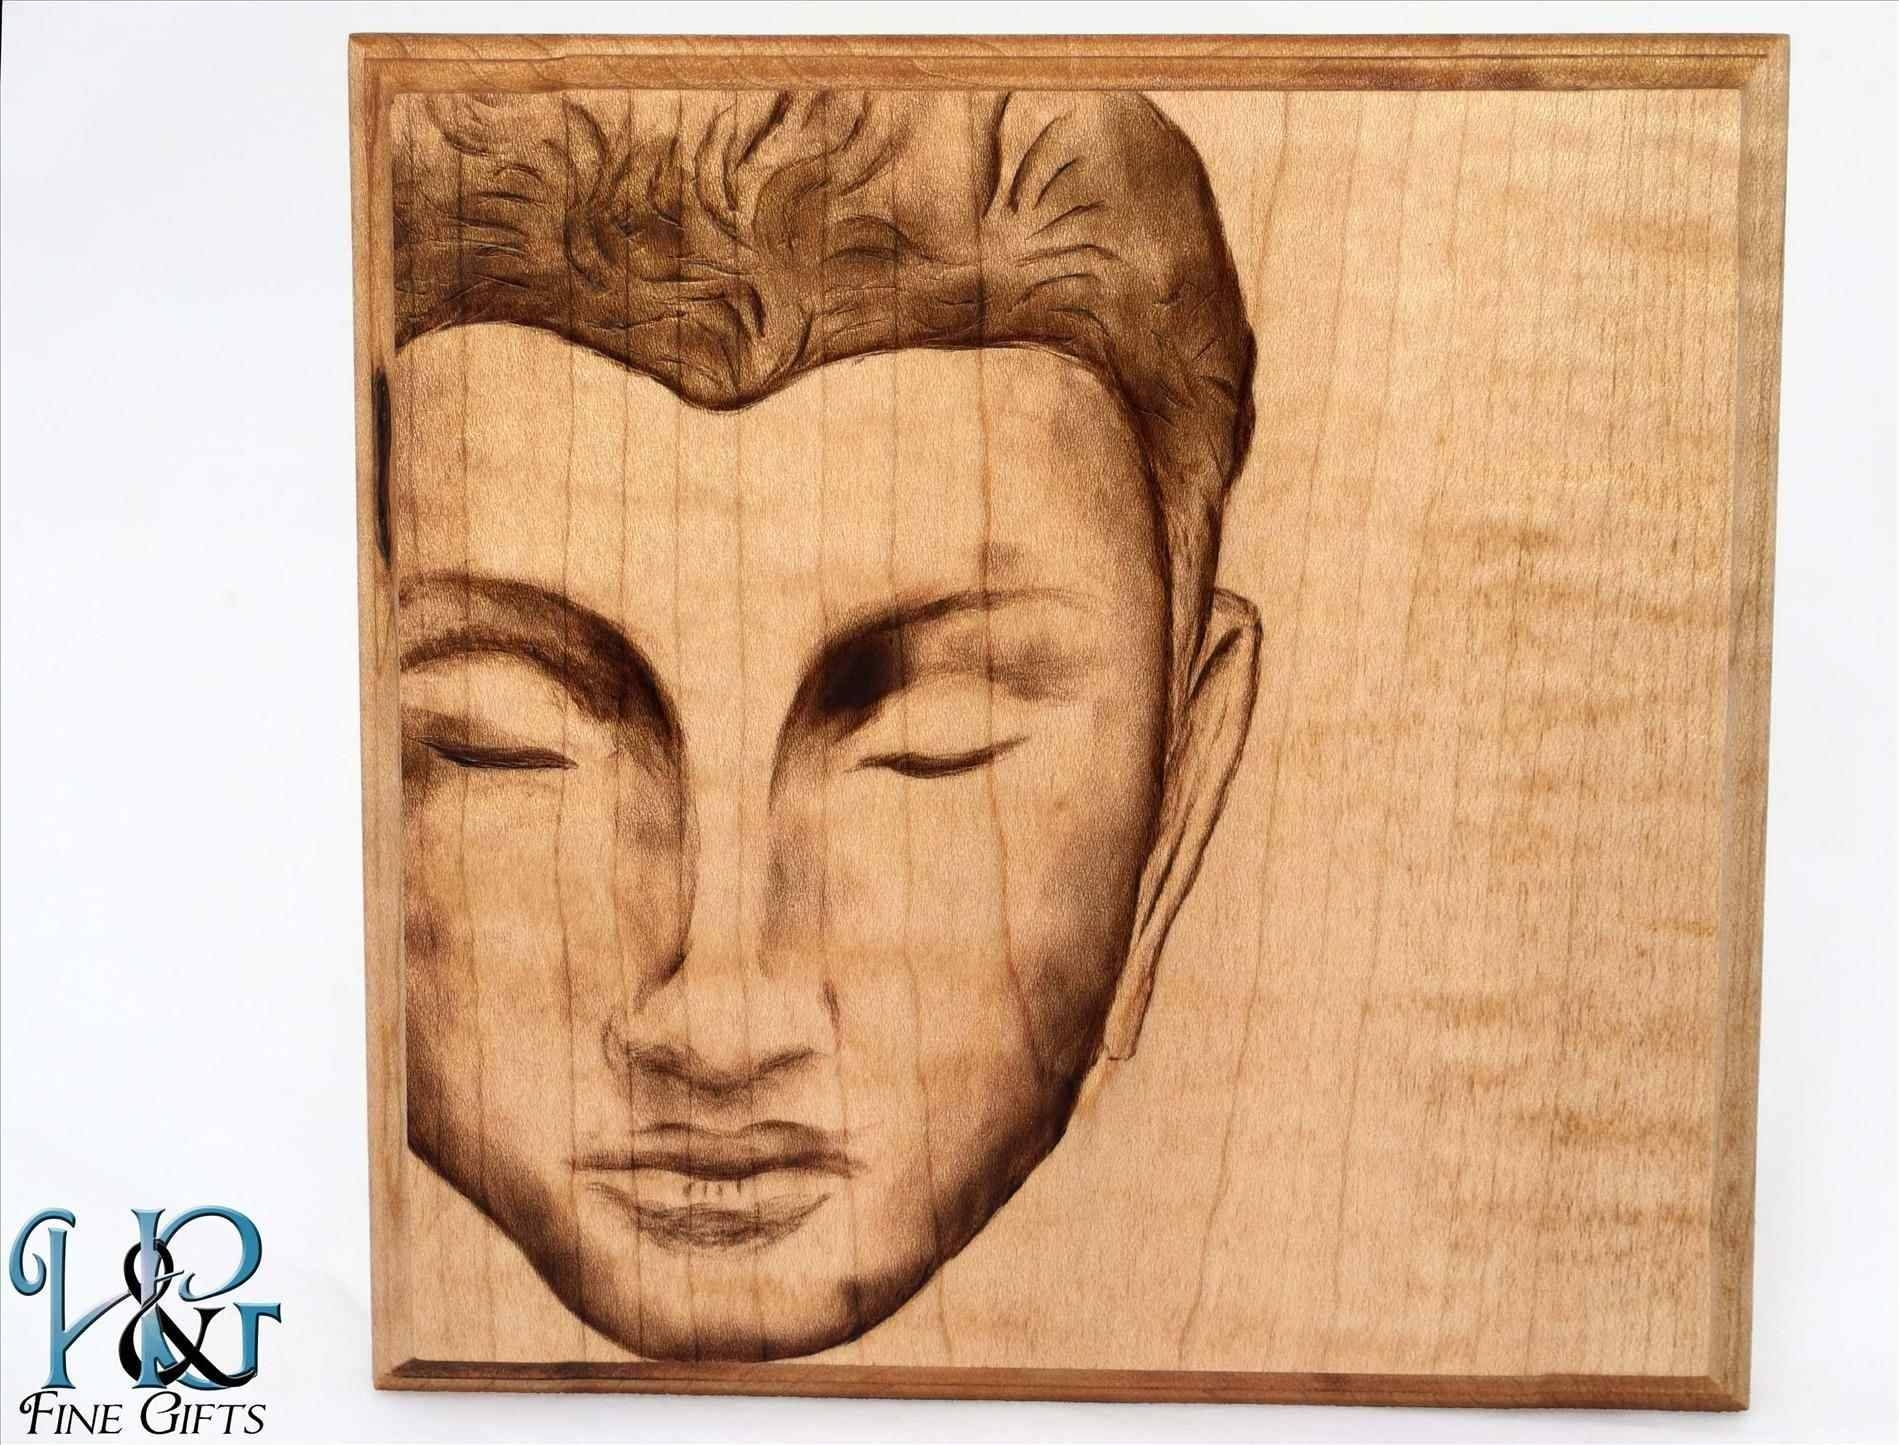 Panels Wood Buddha Wooden Wall Art Buddha Wall Art Decor Carved Regarding Most Recently Released Buddha Wooden Wall Art (View 11 of 20)